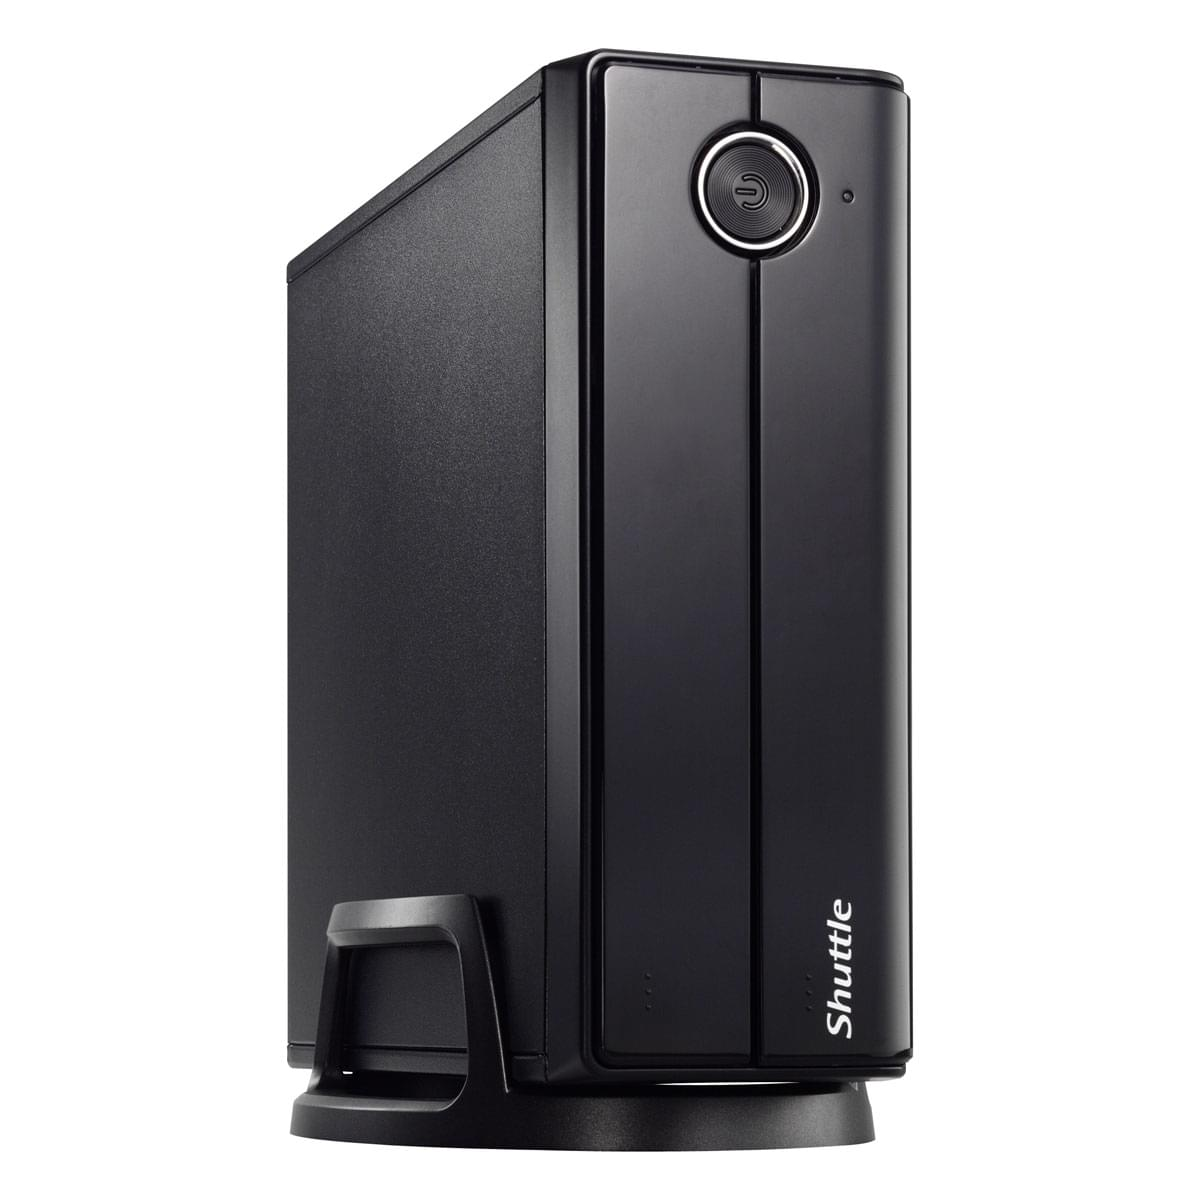 Shuttle XH61V - Barebone et Mini-PC Shuttle - Cybertek.fr - 0